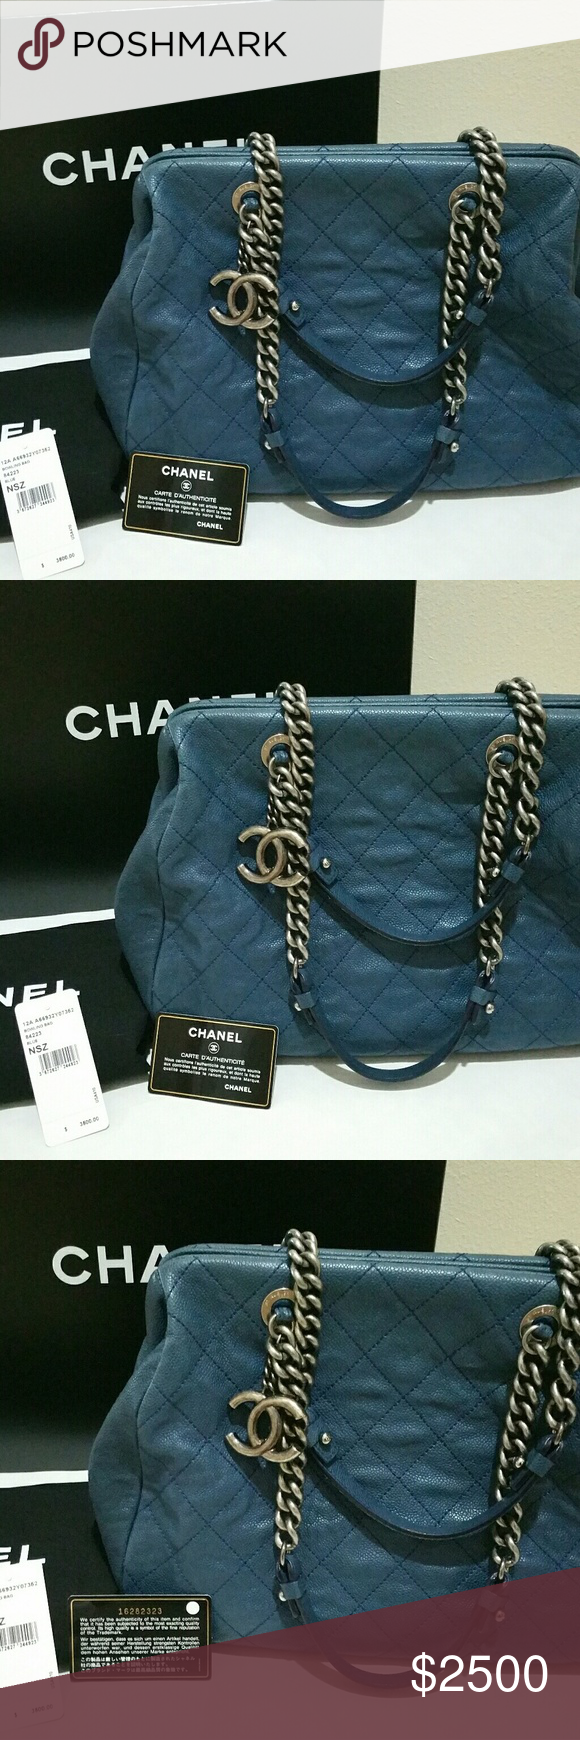 840012493422 AUTHENTIC CHANEL BOWLING BAG 84223 BLUE NSZ Price tag $3,500 , pre owned in  great conditioned